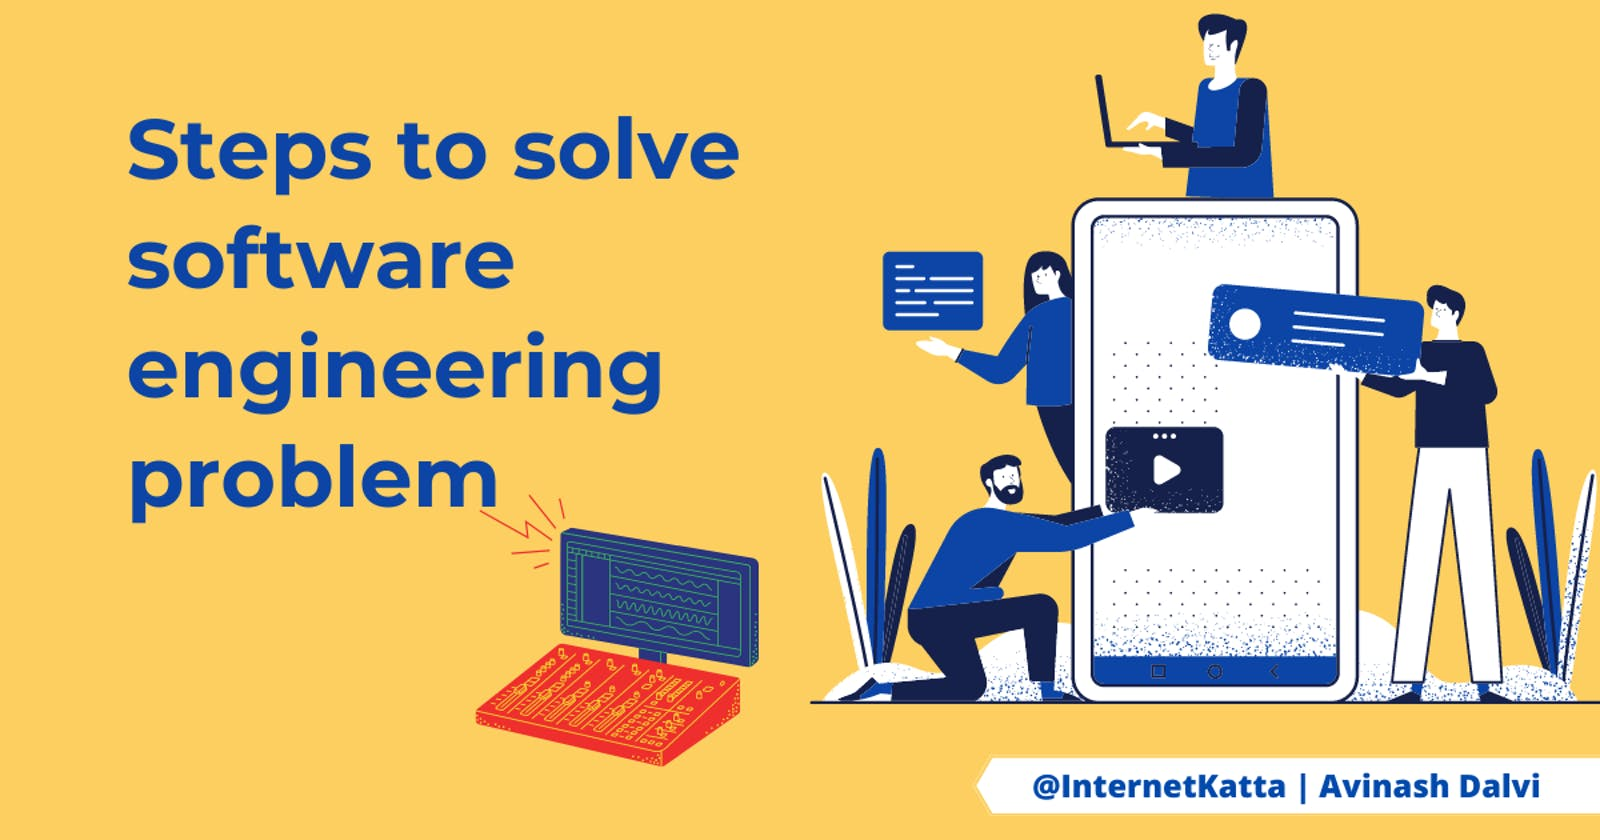 Steps to solve software engineering problem